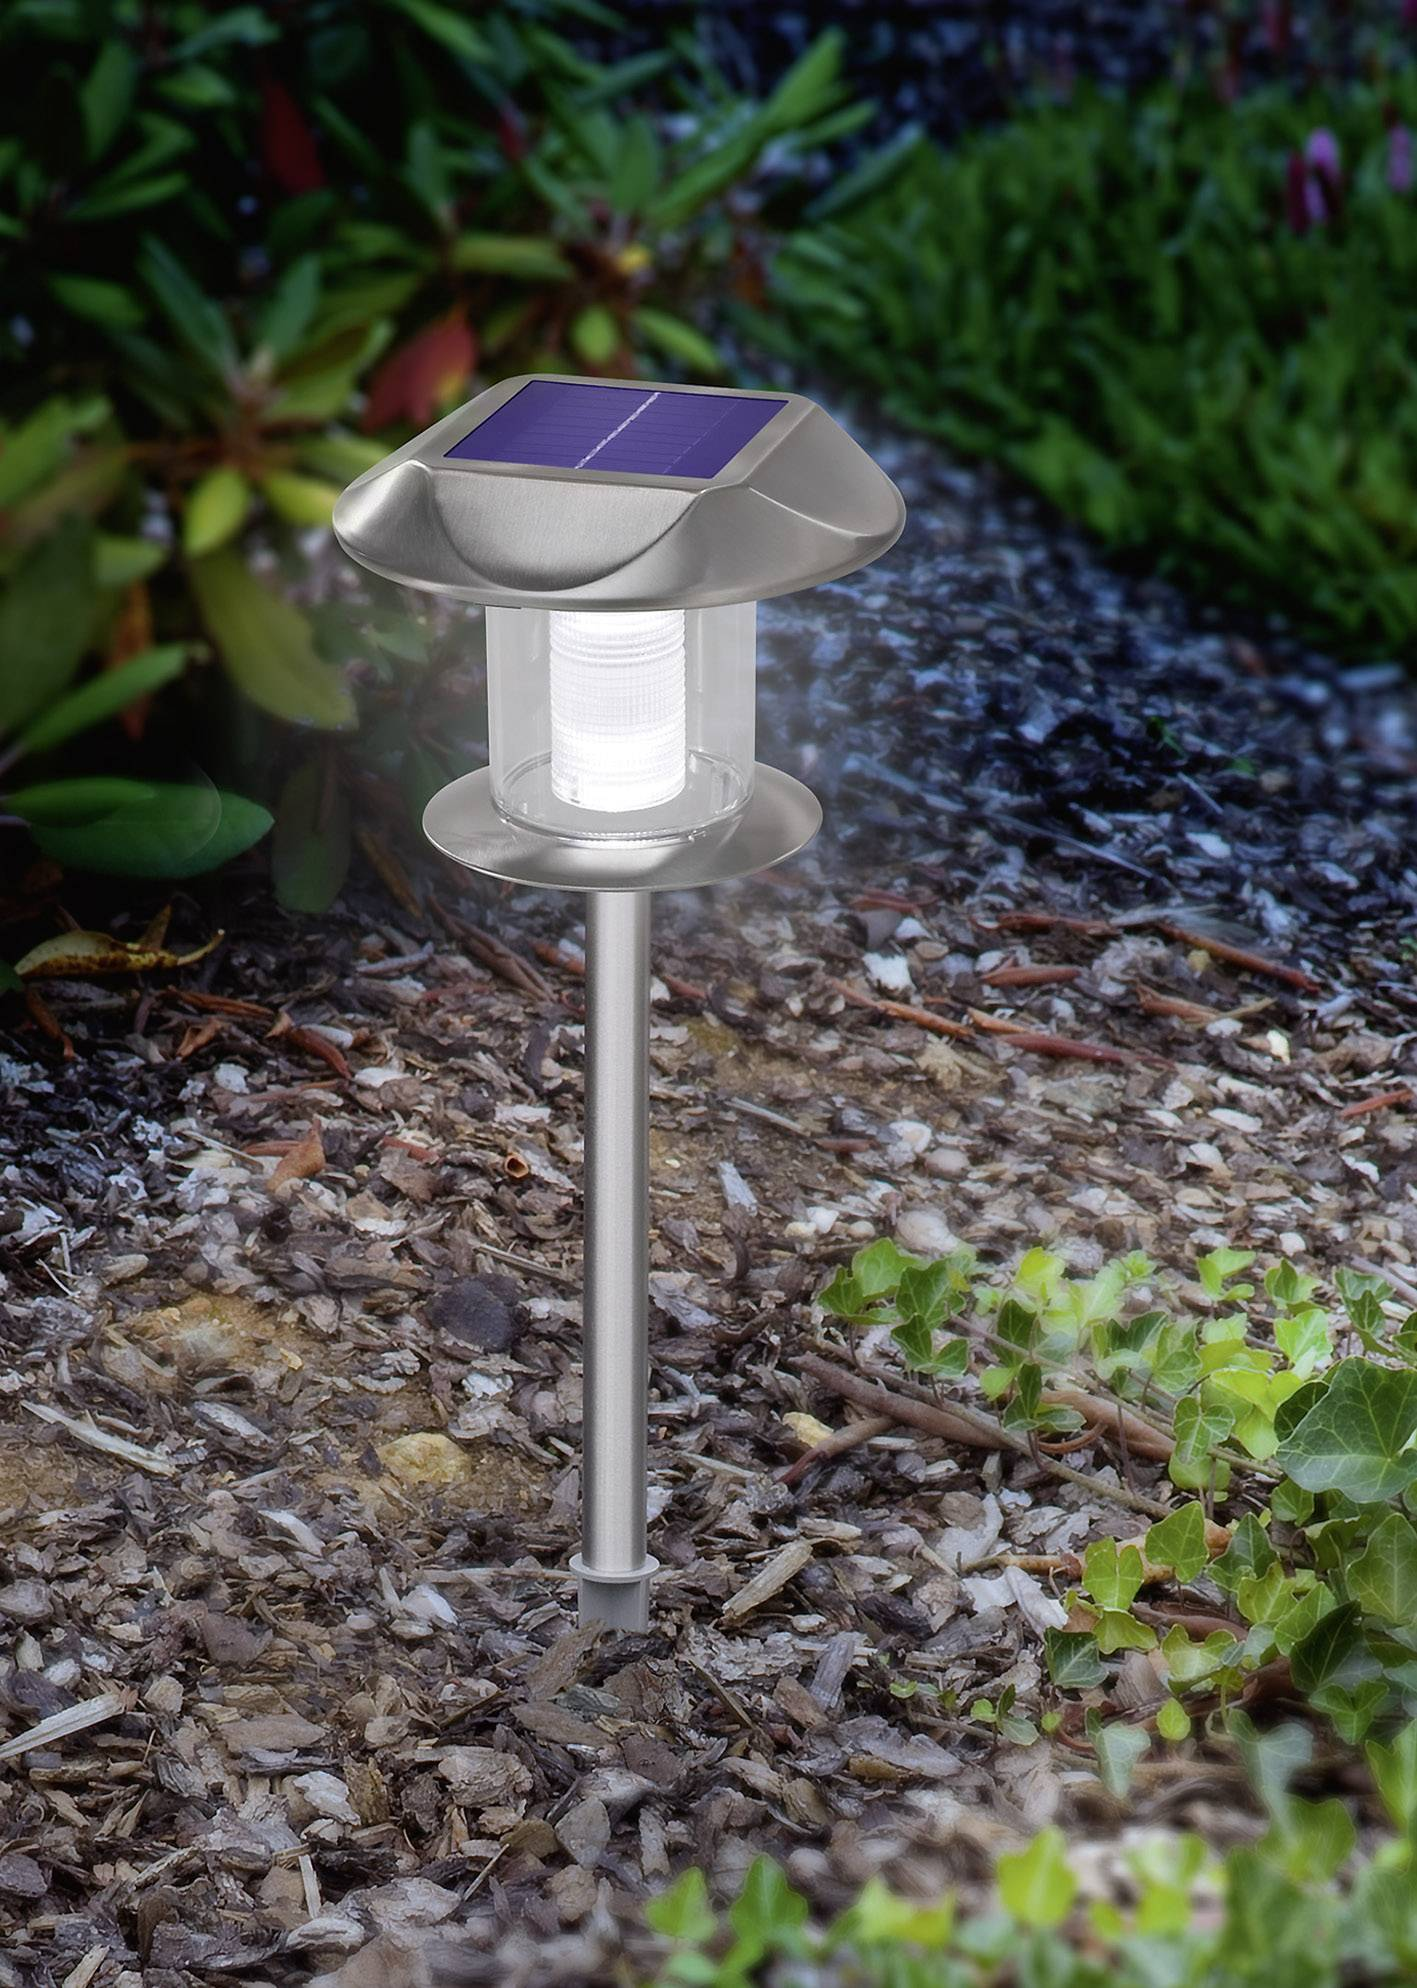 Tuin Lamp Esotec Solar Tuinlamp Sunny 102093 Led Warm Wit Neutraal Wit Rvs